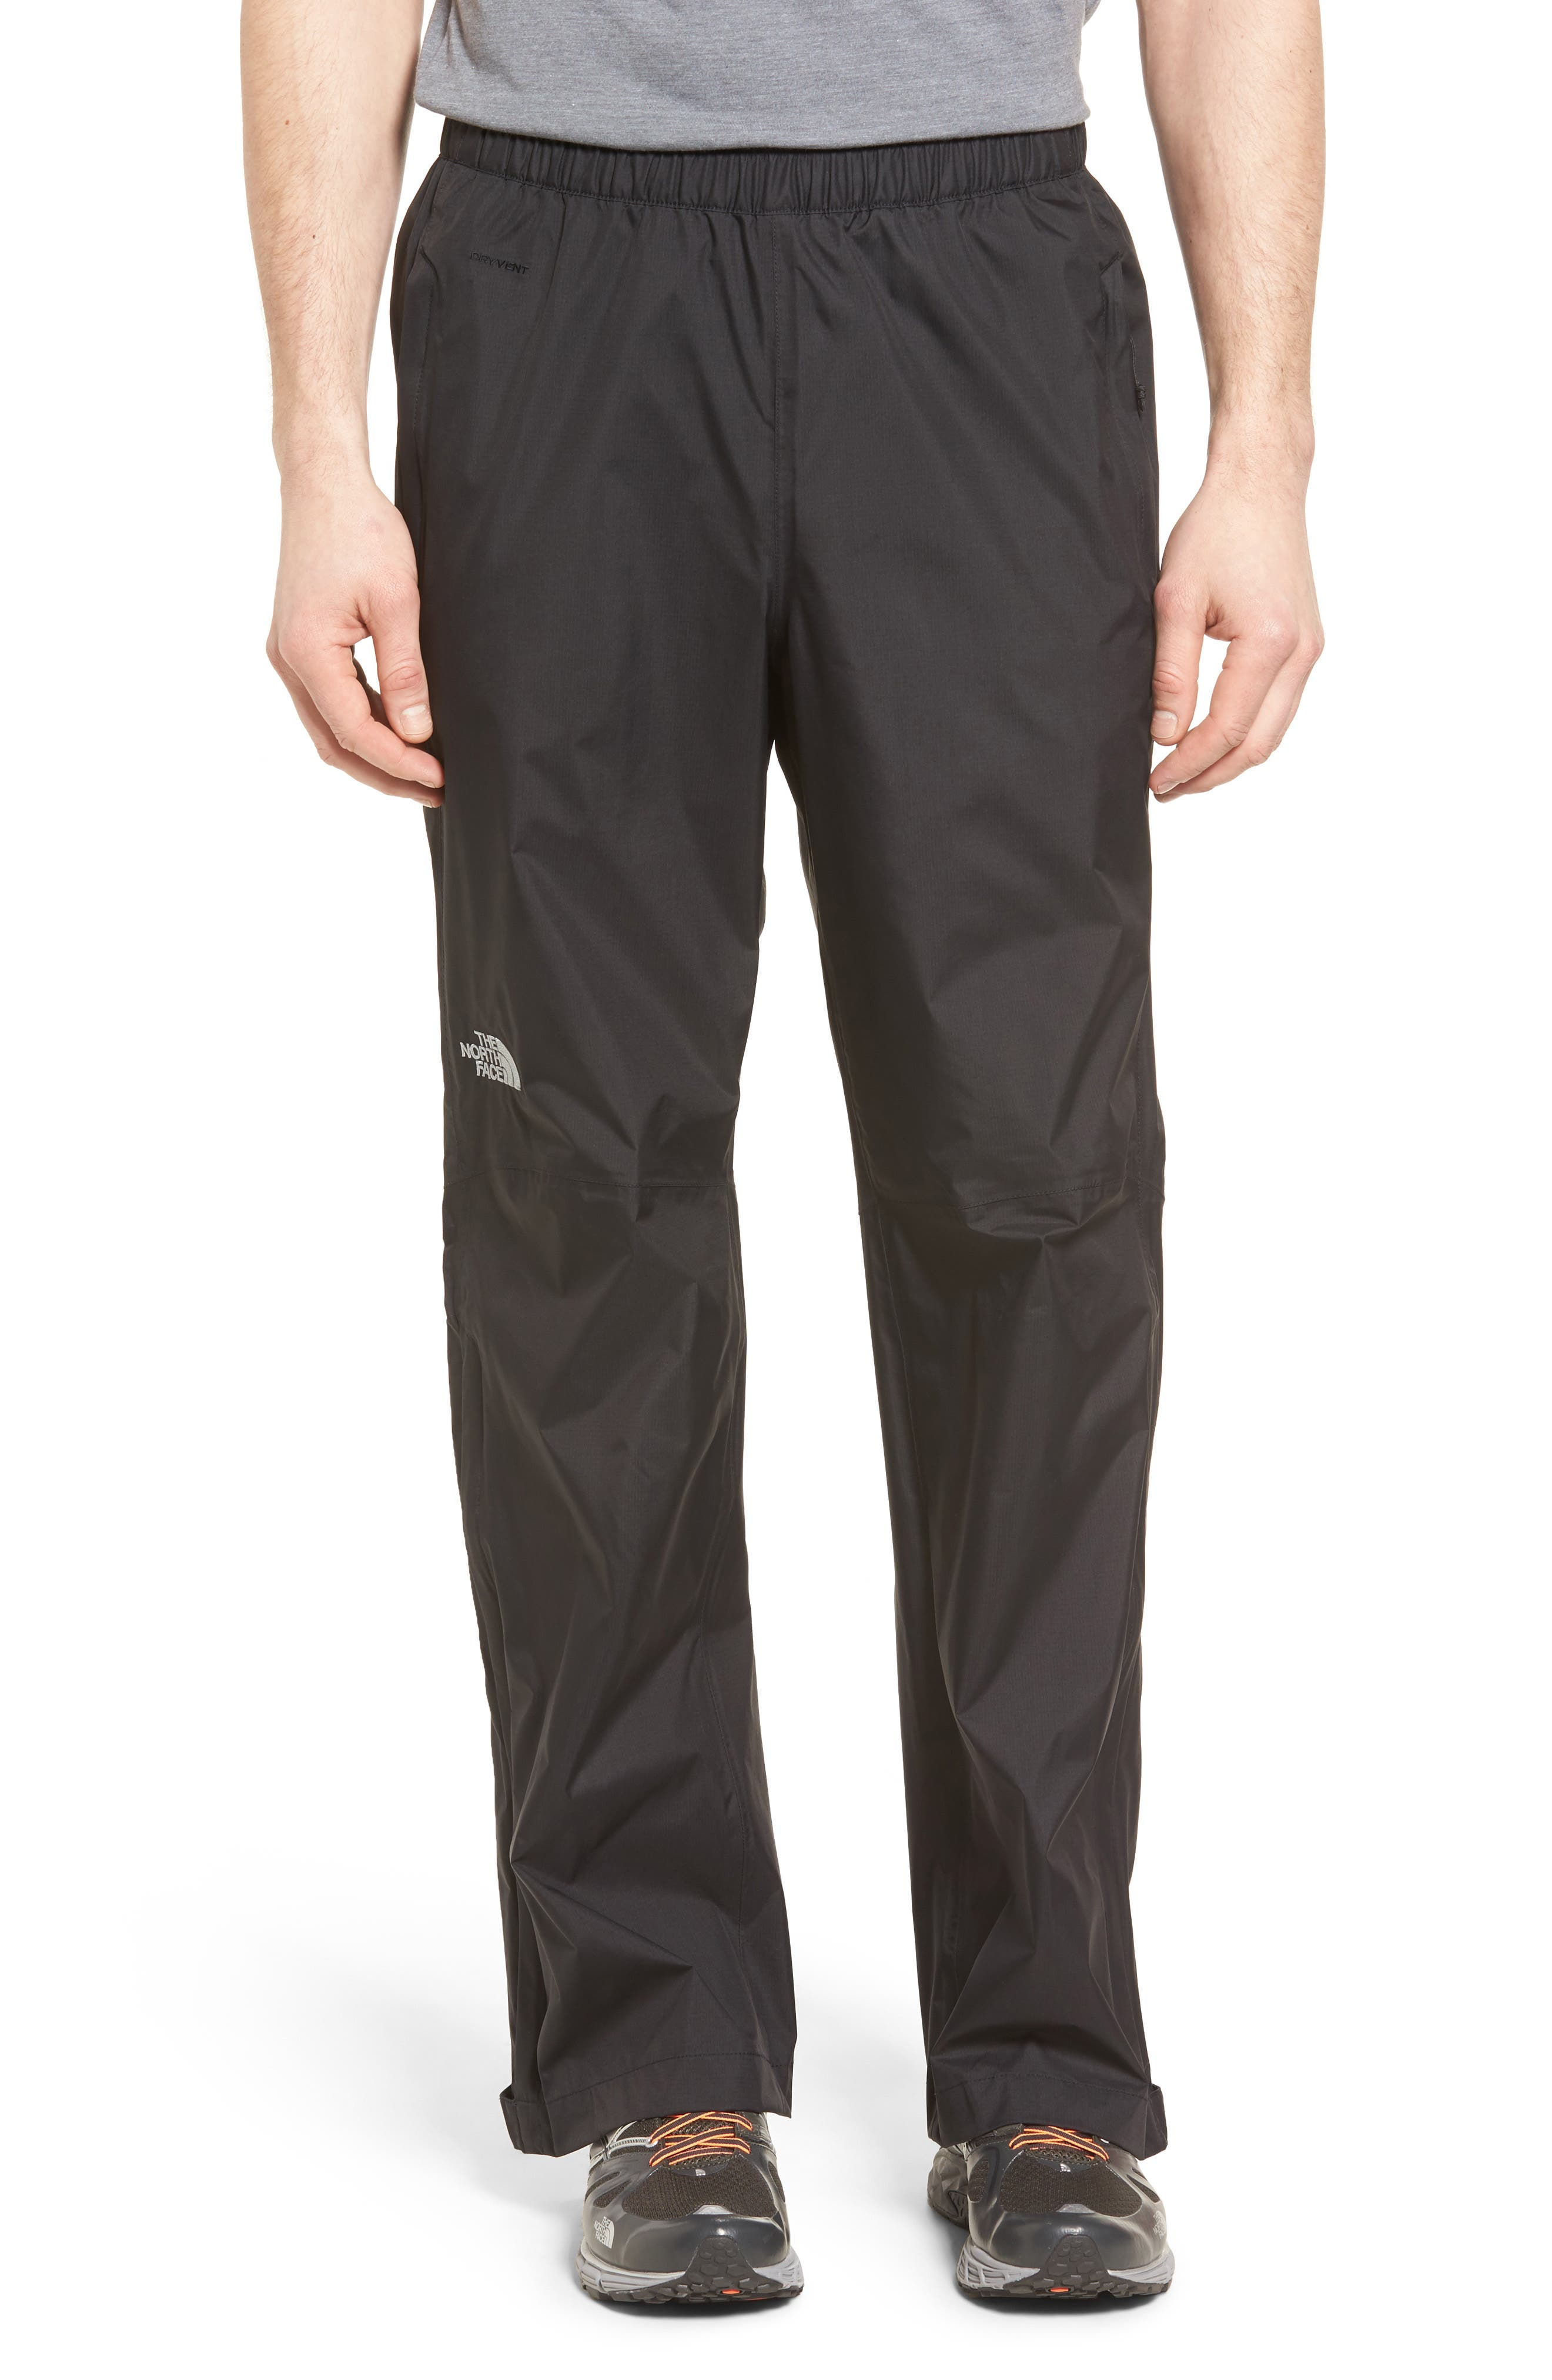 Alternate Image 1 Selected - The North Face Venture Waterproof Pants